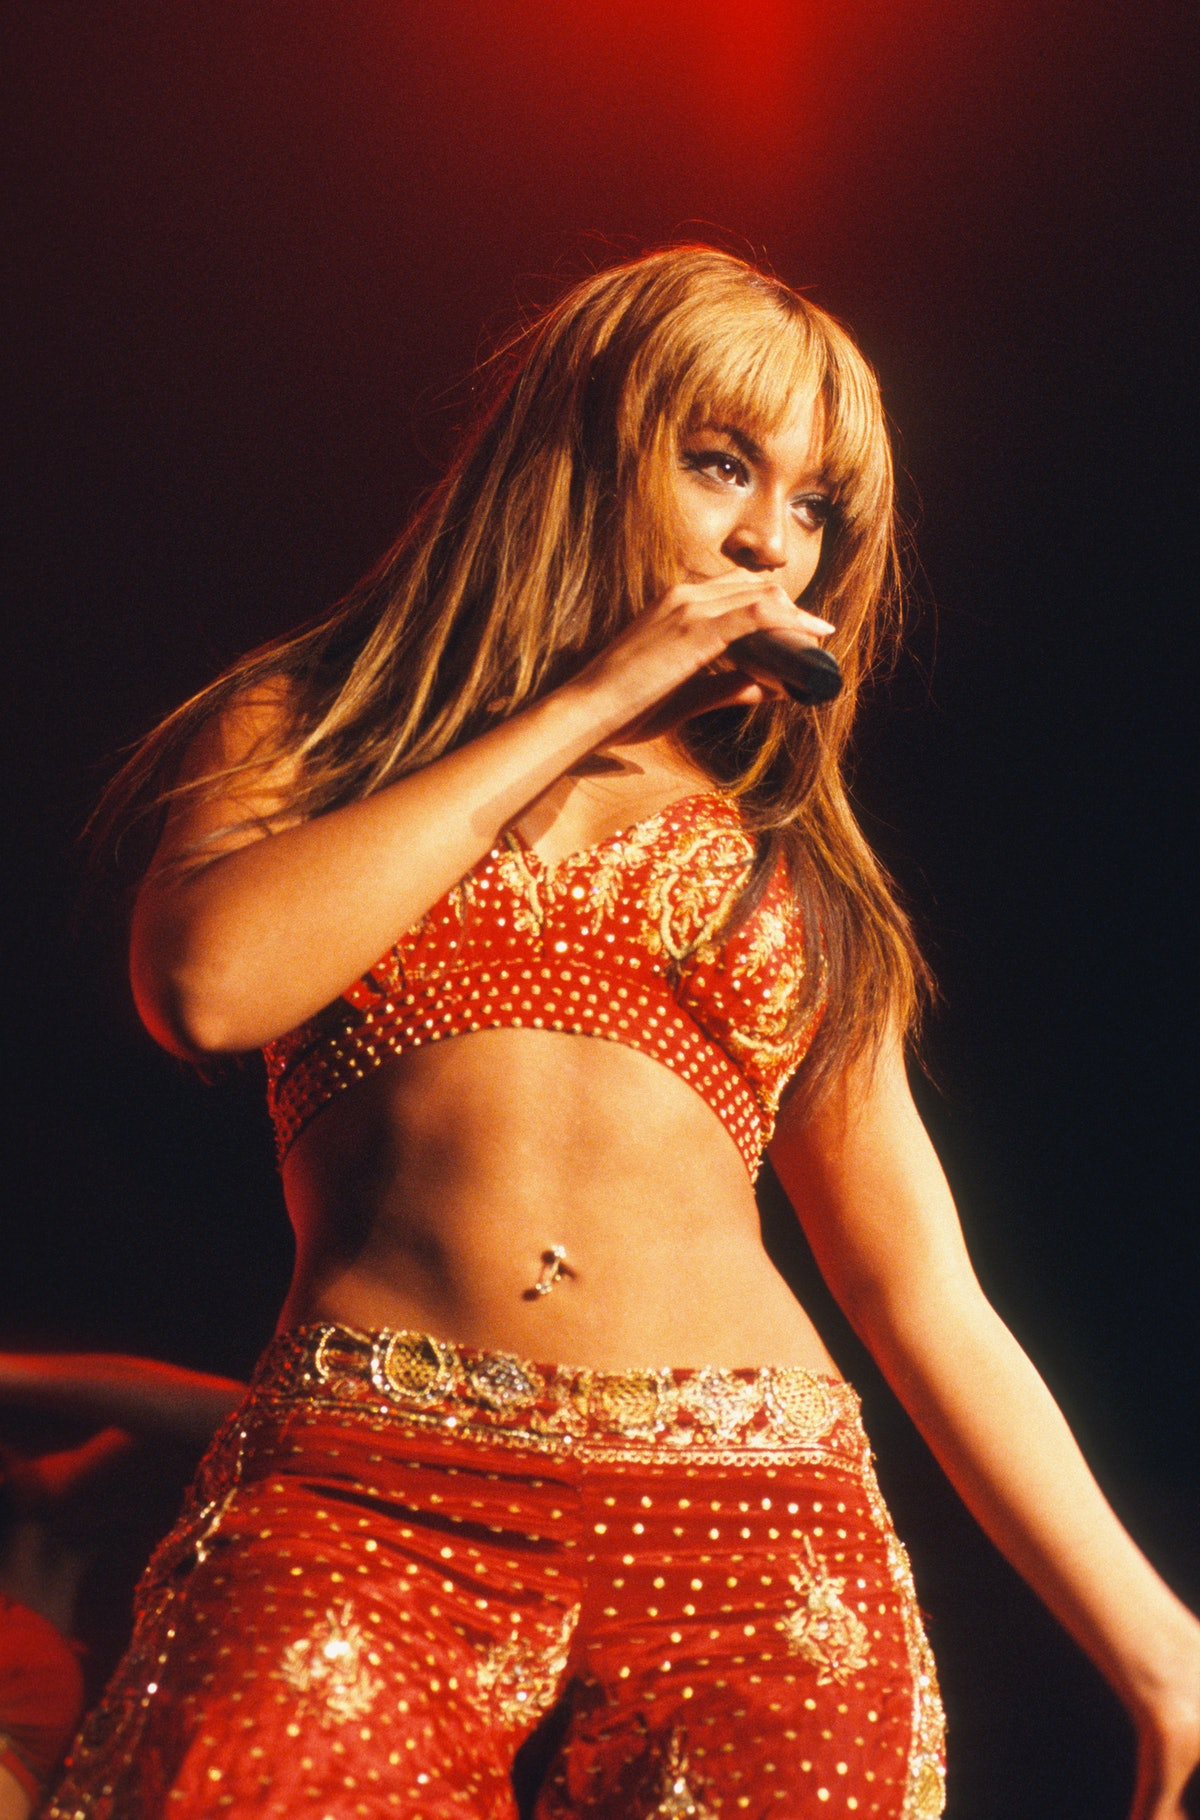 Beyonce in a red and gold outfit with her belly button on show in the Netherlands in 2003.